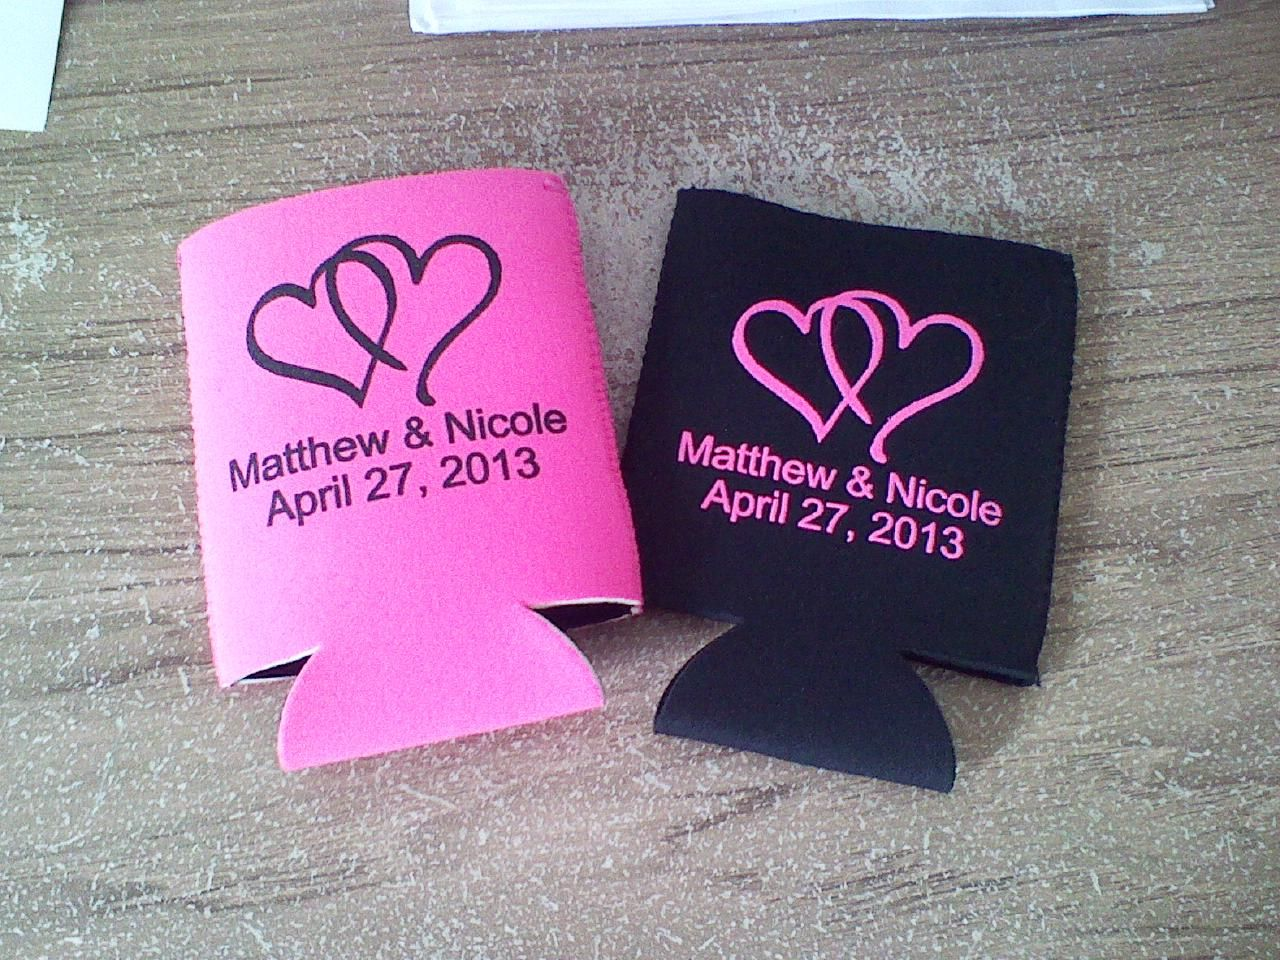 Simple Koozie wedding favors www.kustomkoozies.com Use discount code ...